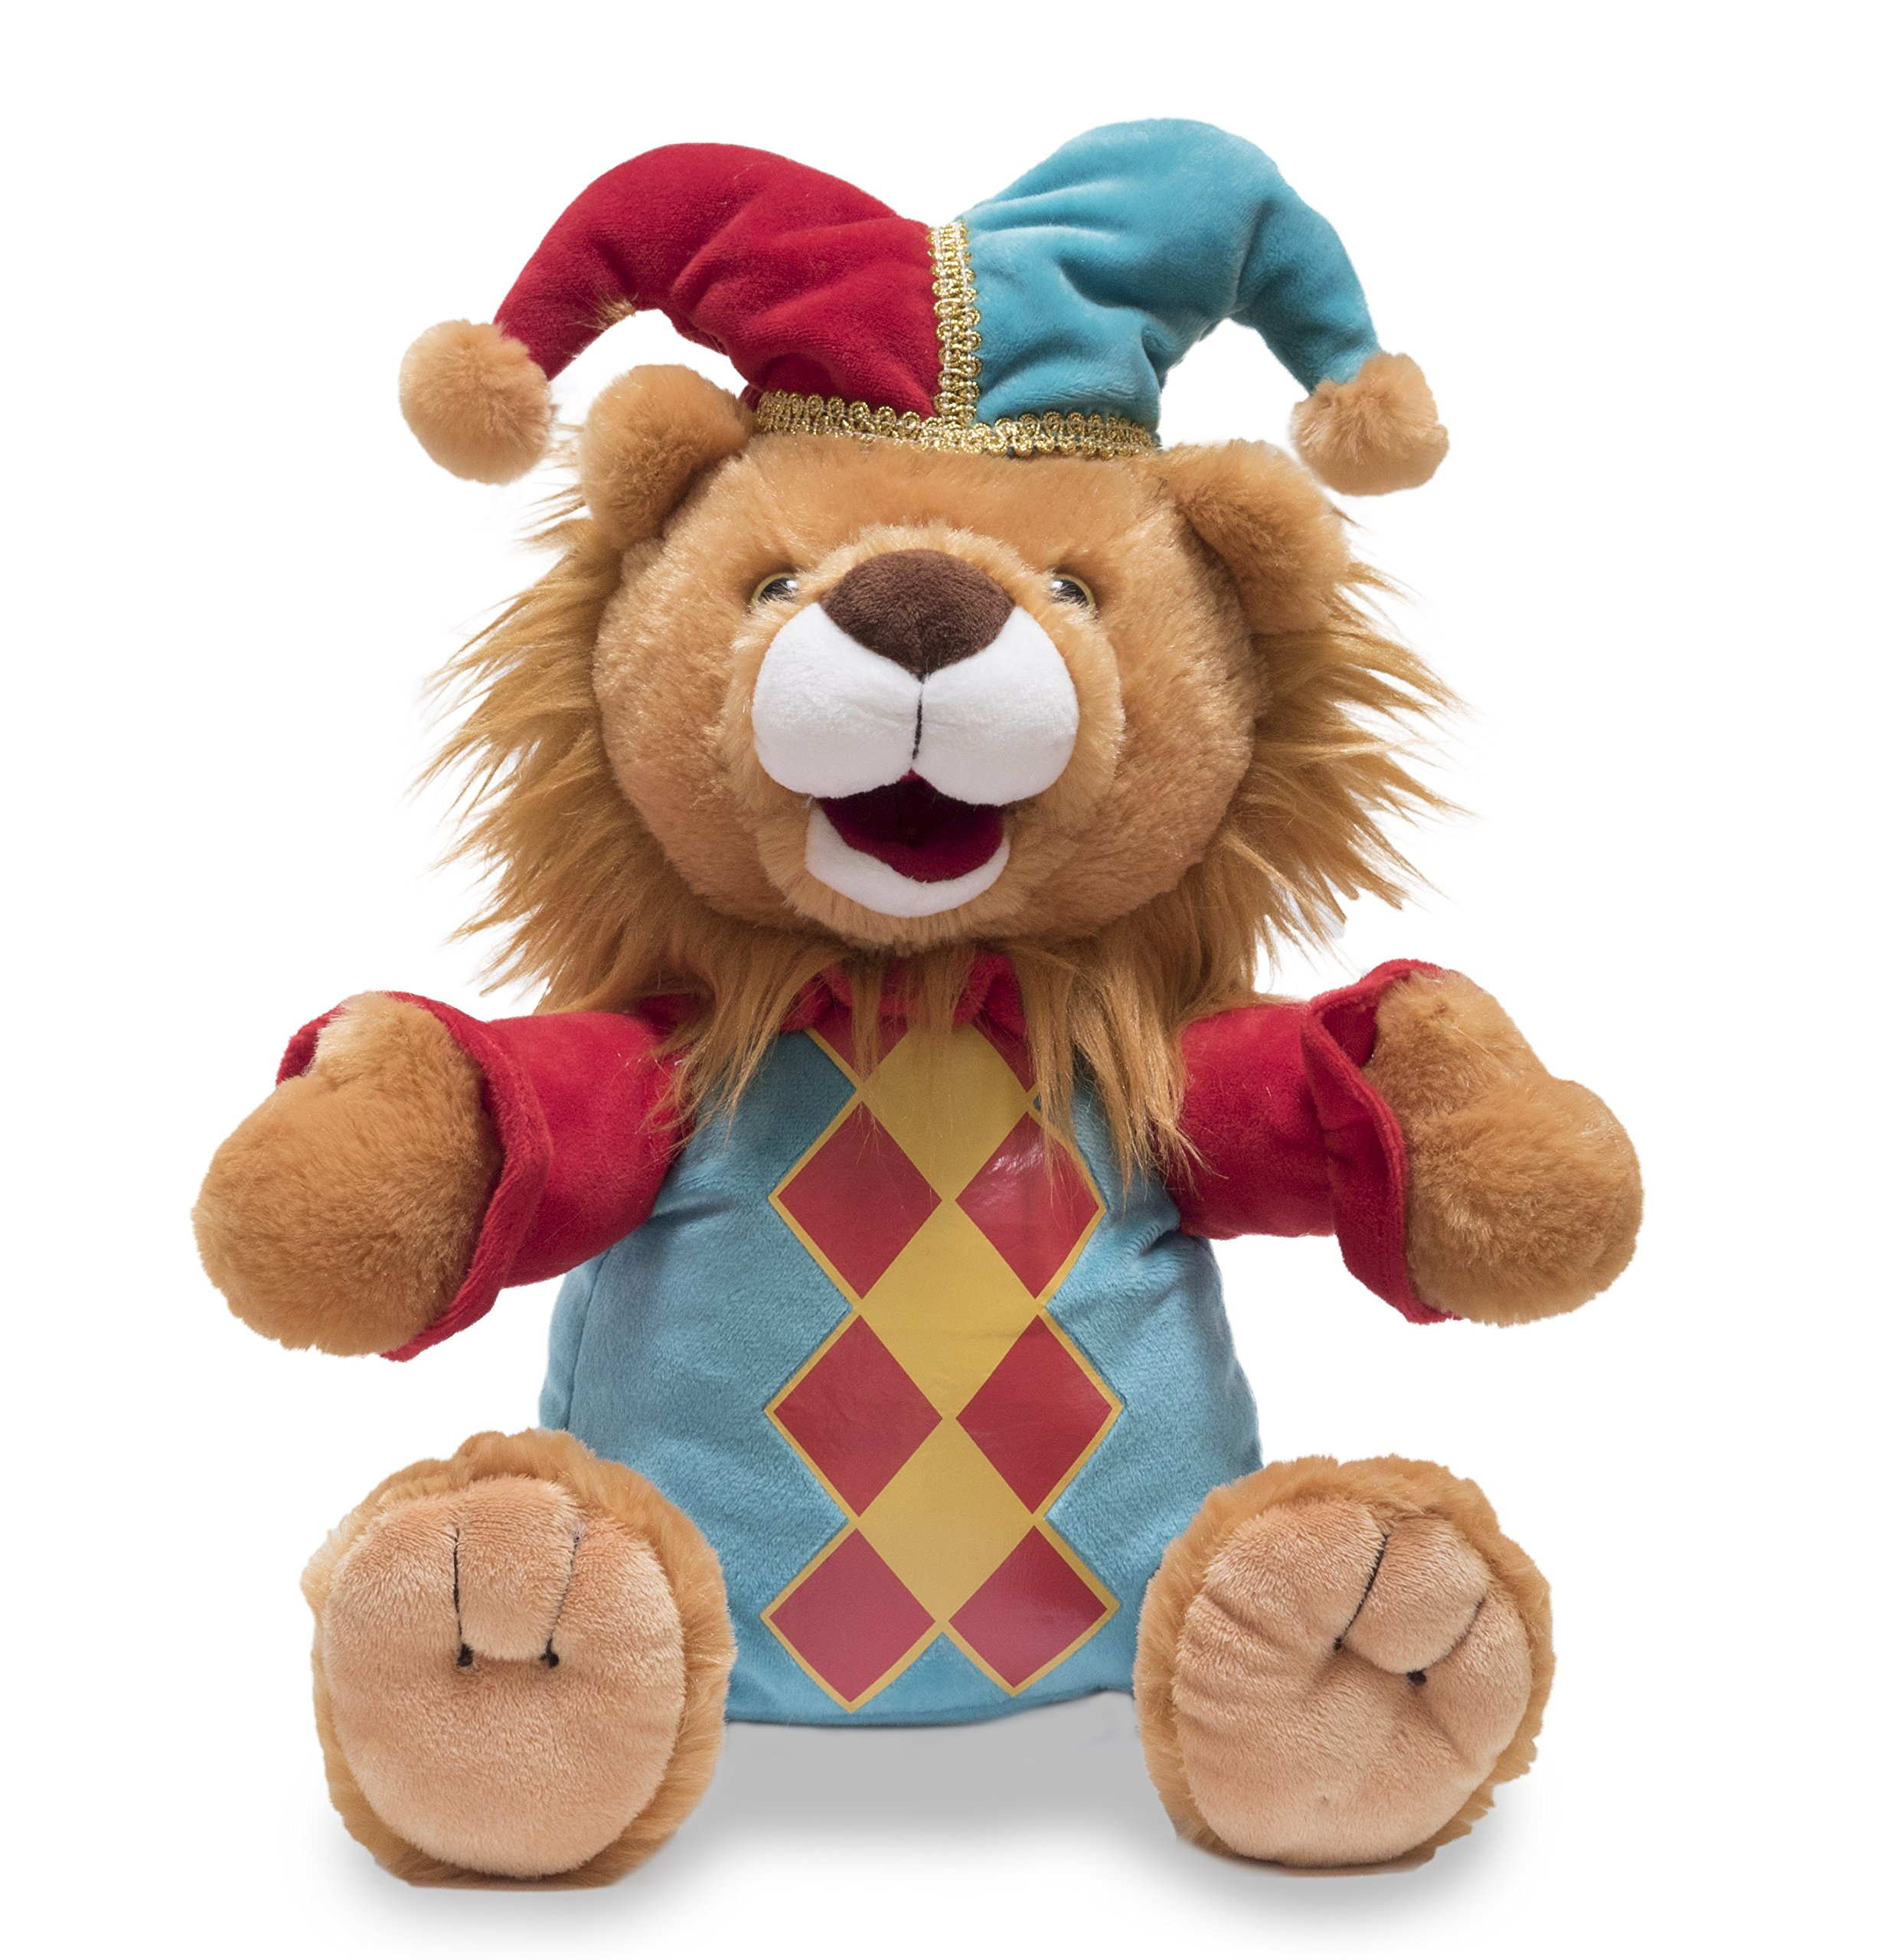 Cuddle Barn Leo The Jester Sings and Dances to That's Amore! by Cuddle Barn